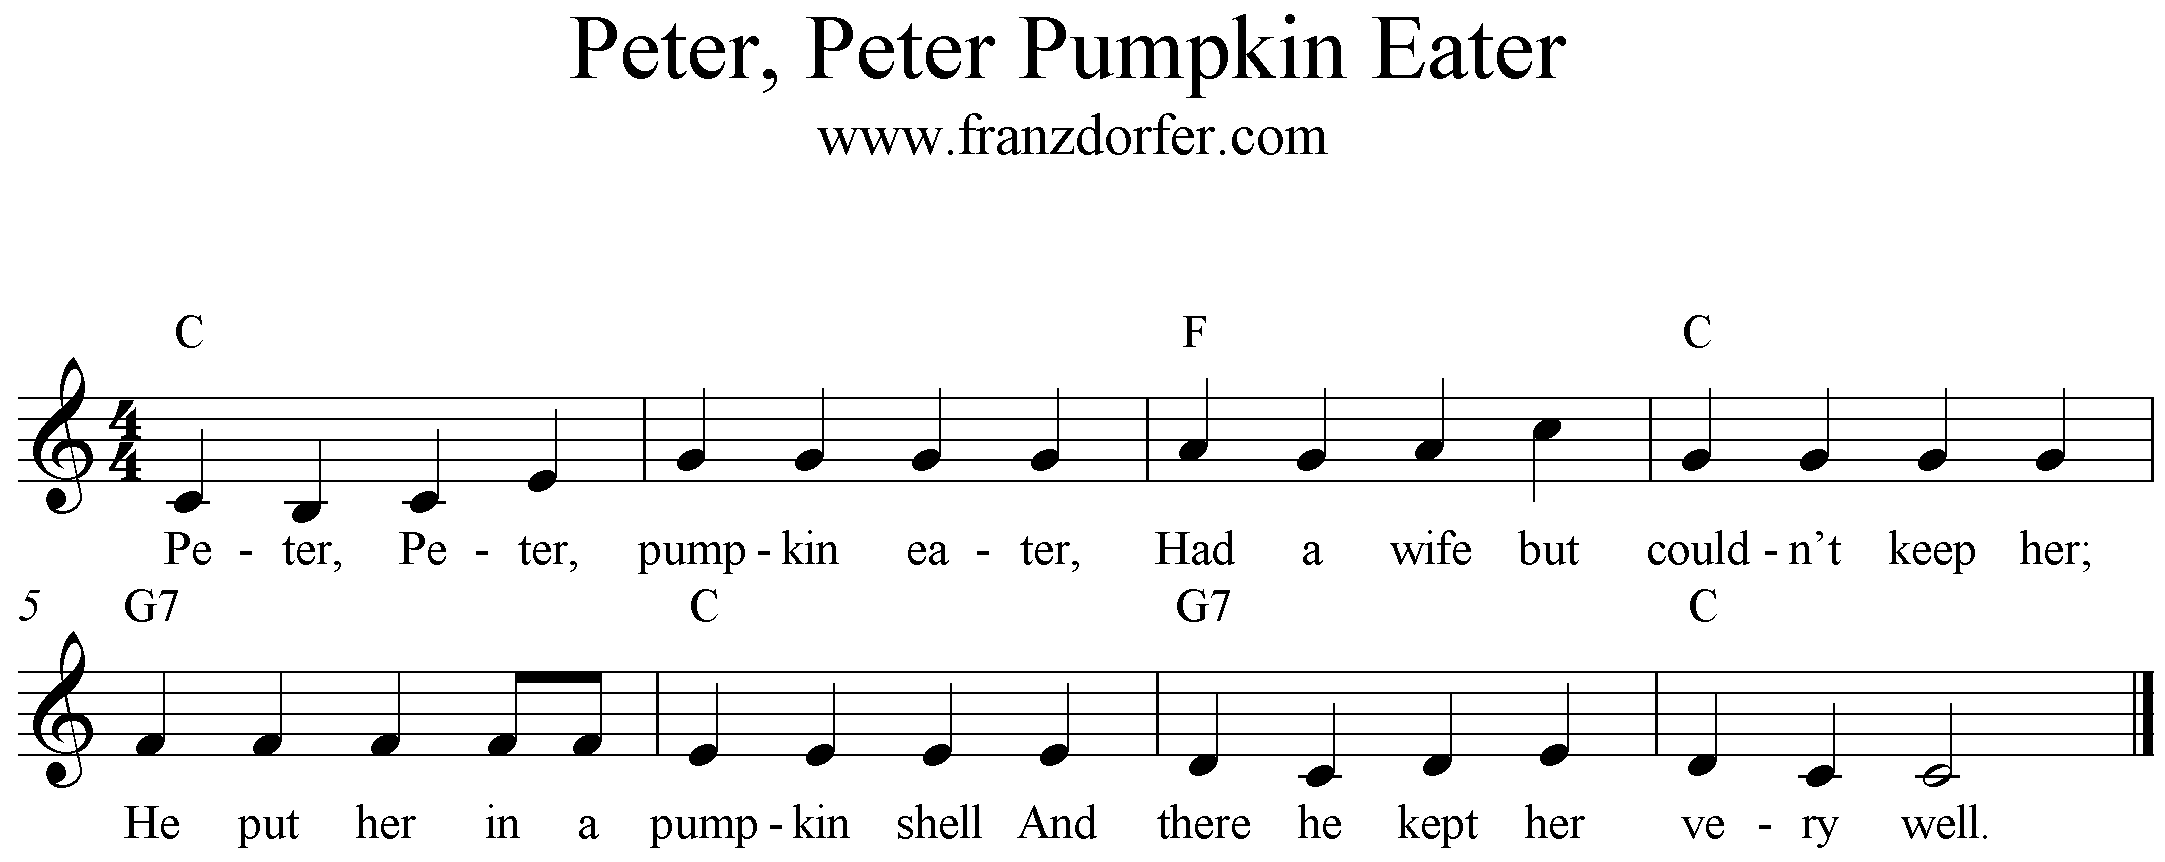 Freesheet Music Peter Peter Pumpkin Eater